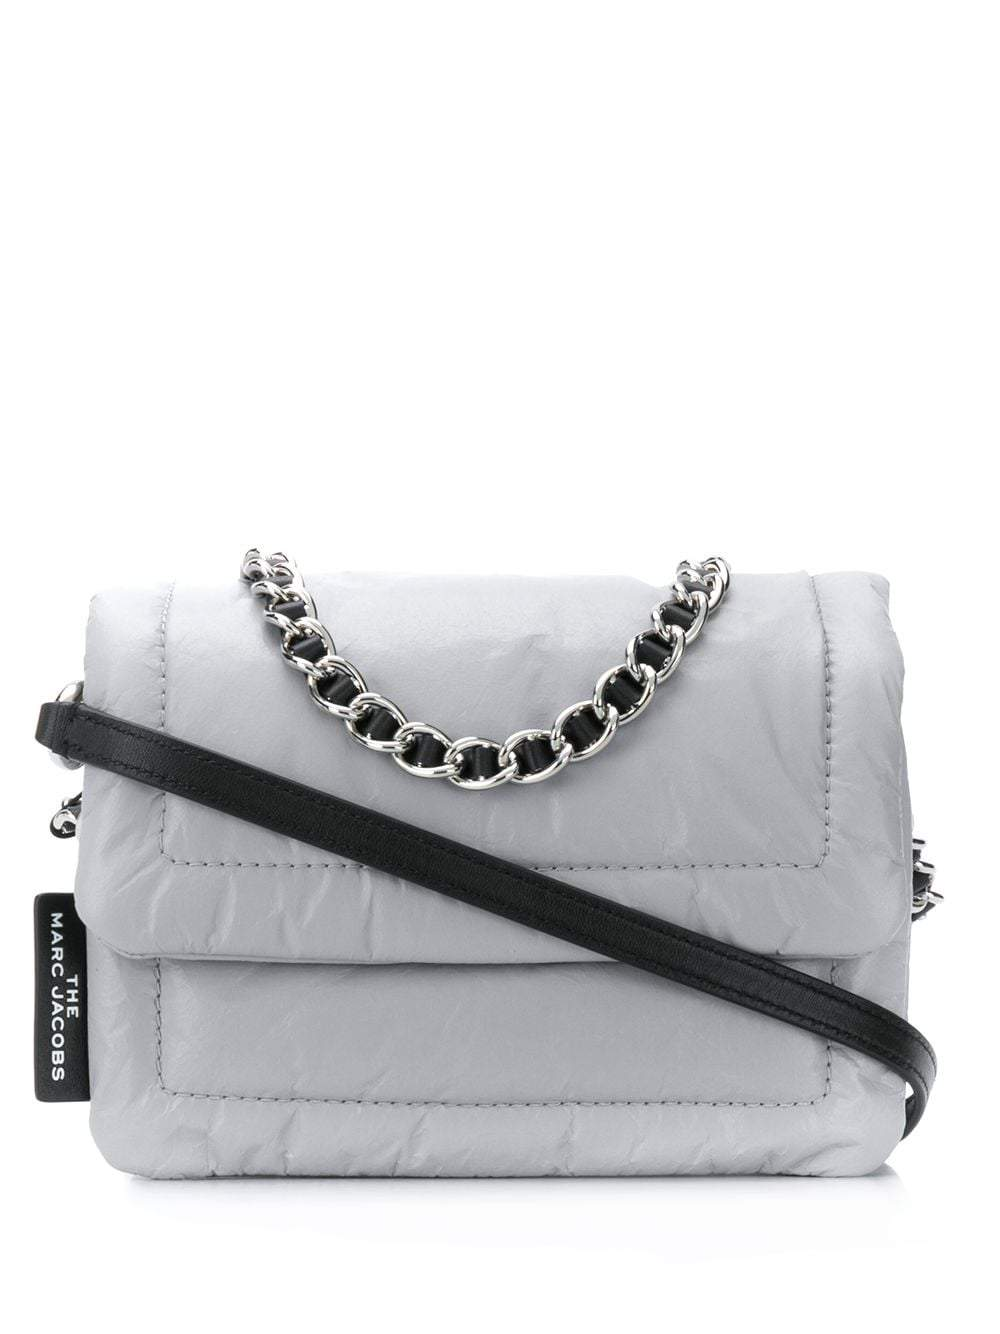 Light grey Pillow faux-leather shoulder bag from Marc Jacobs featuring foldover top with magnetic fa